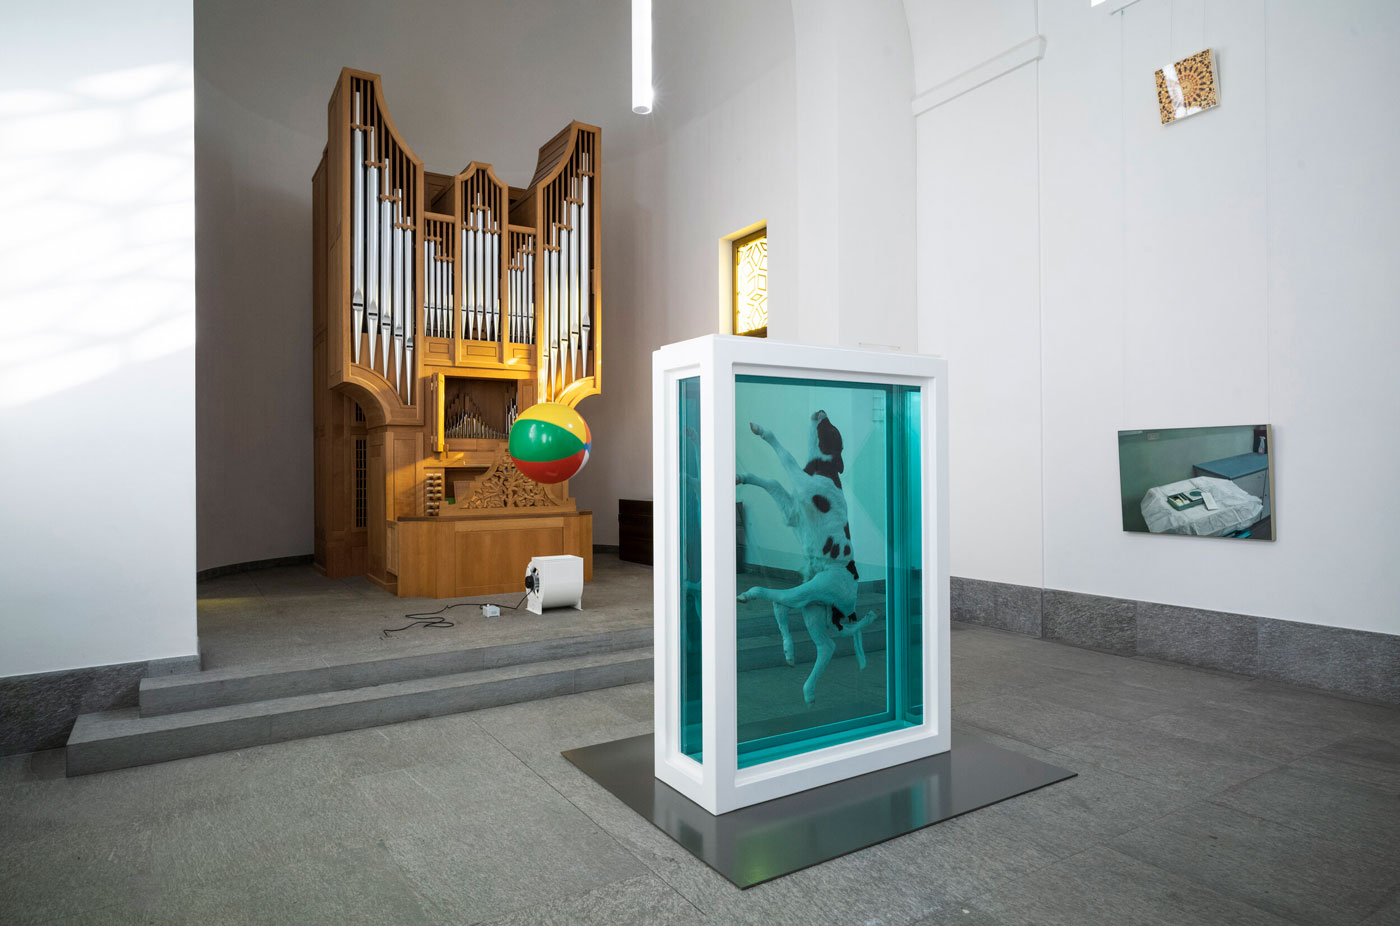 Damien Hirst: Mental Escapology is on display until 24 March 2021.